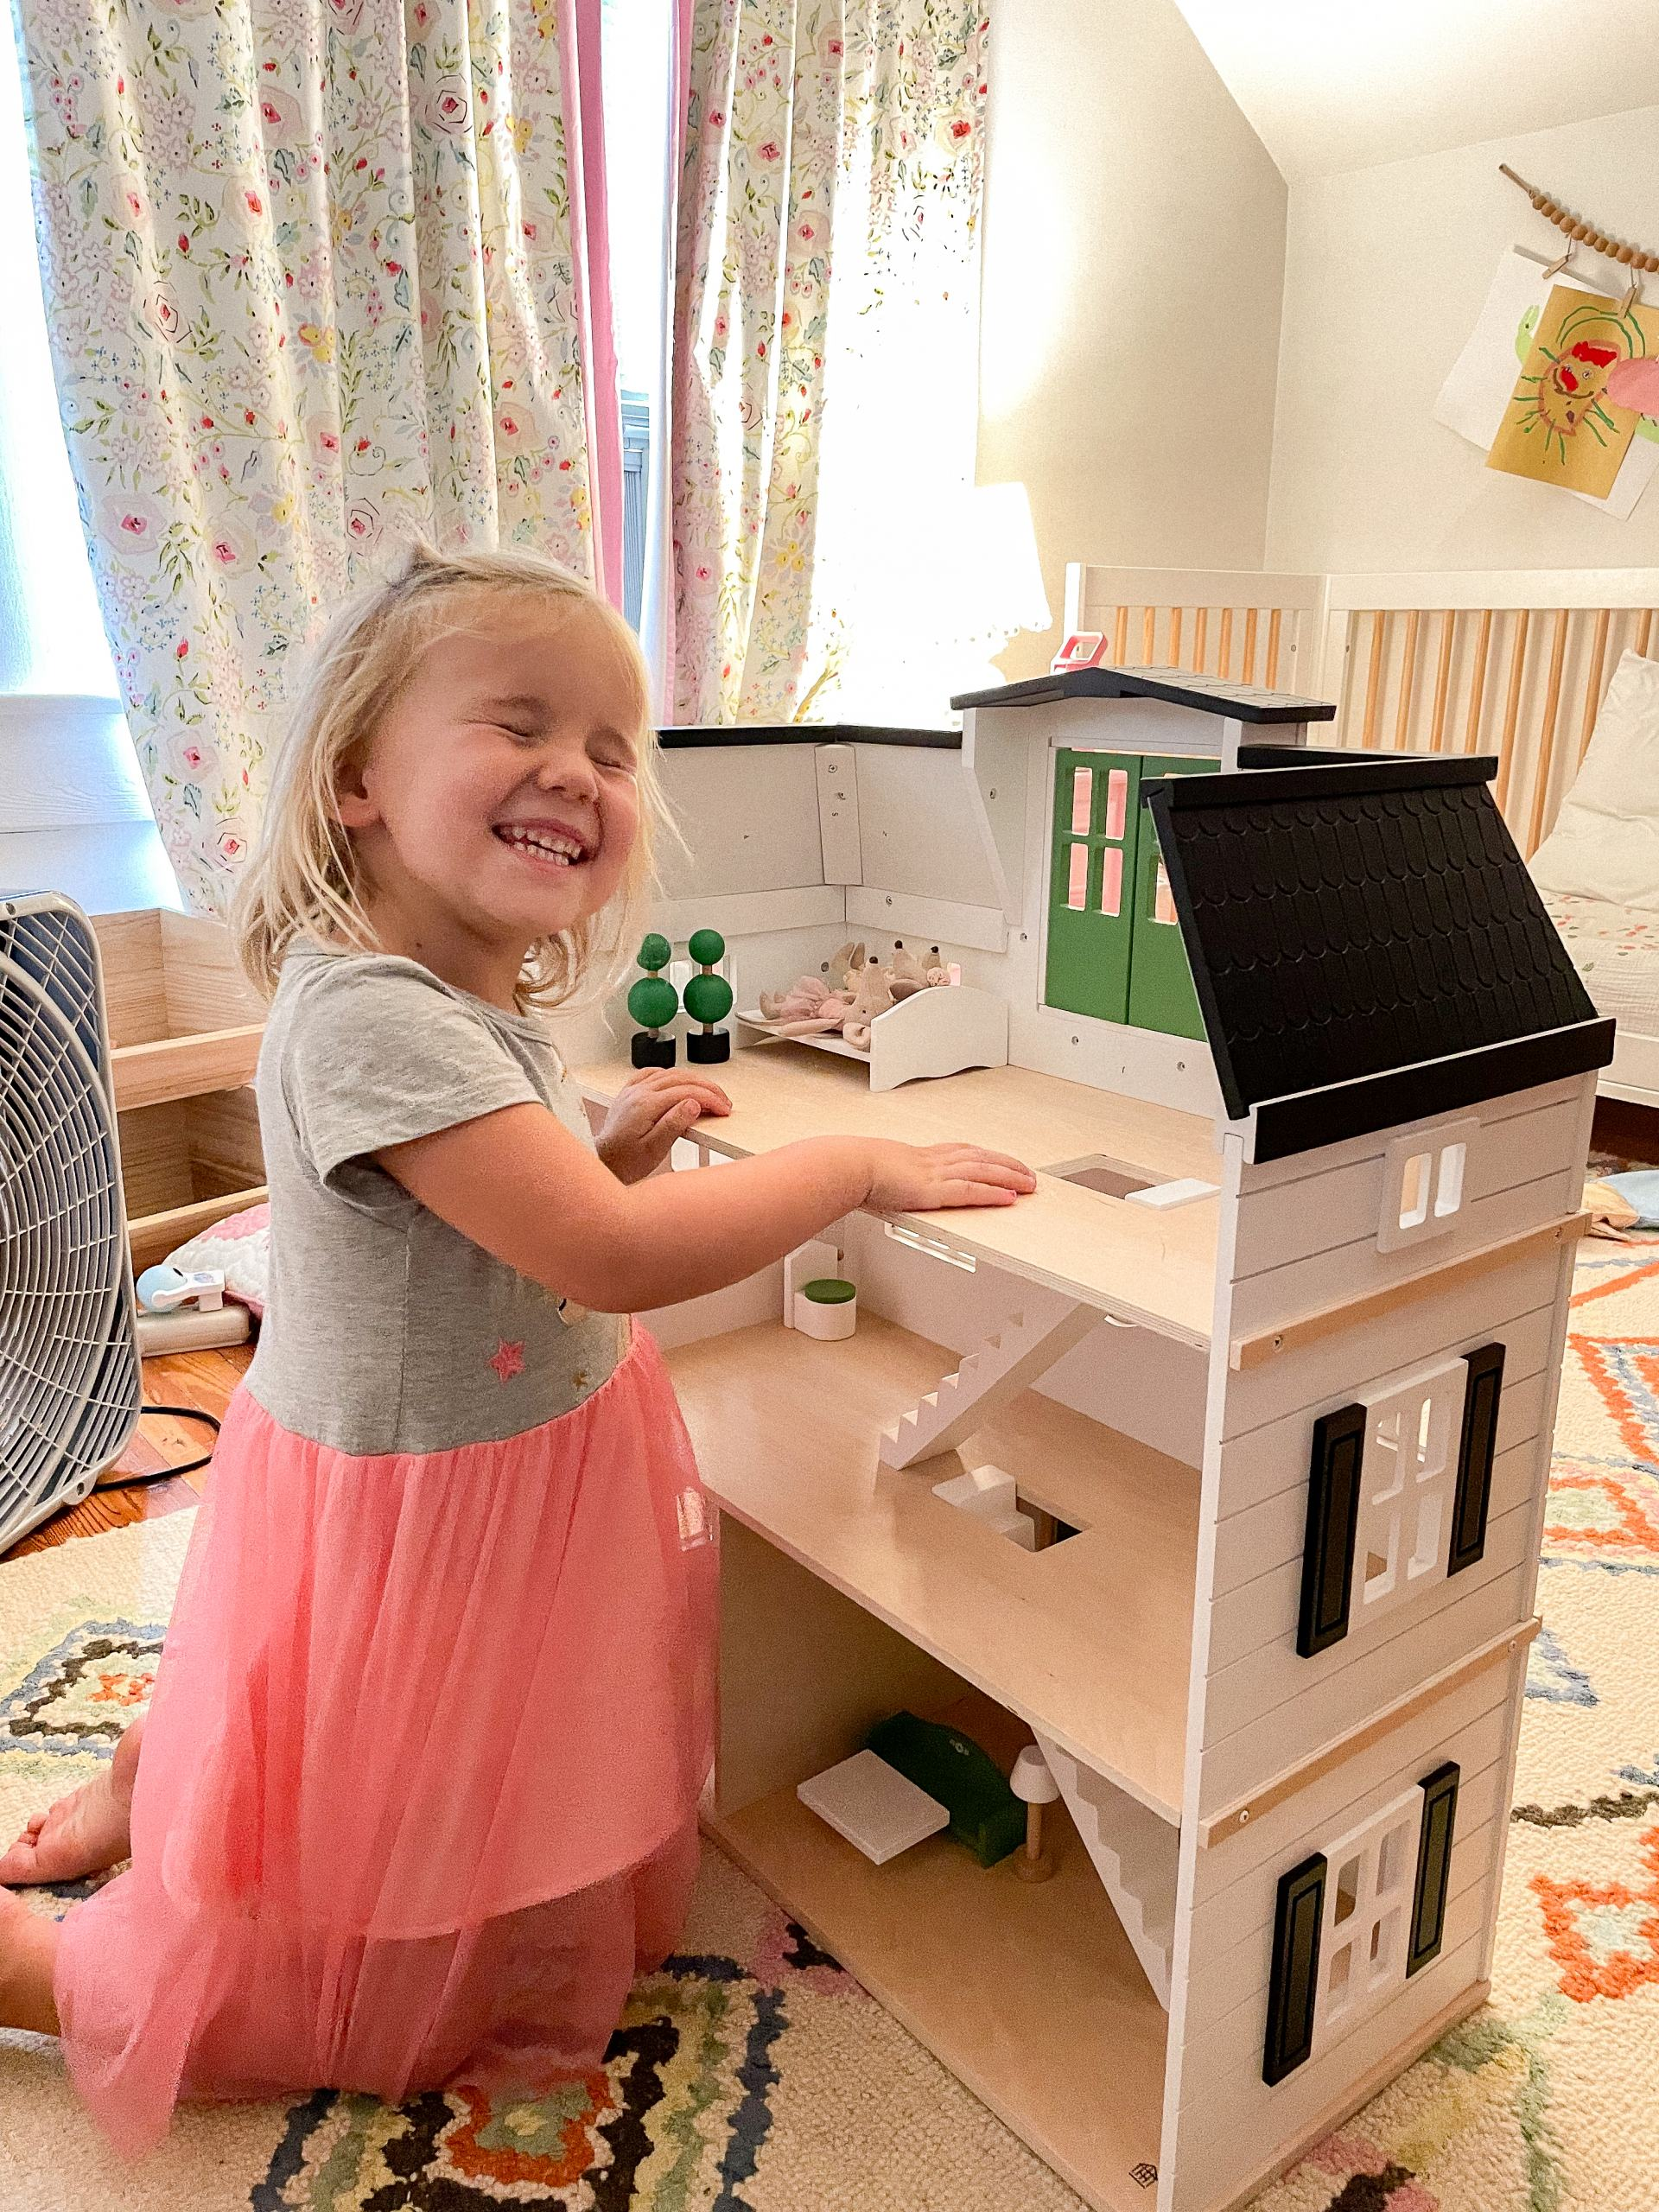 classic doll house - hearth and hand dollhouse - target dollhouse - white dollhouse - maileg mouse house